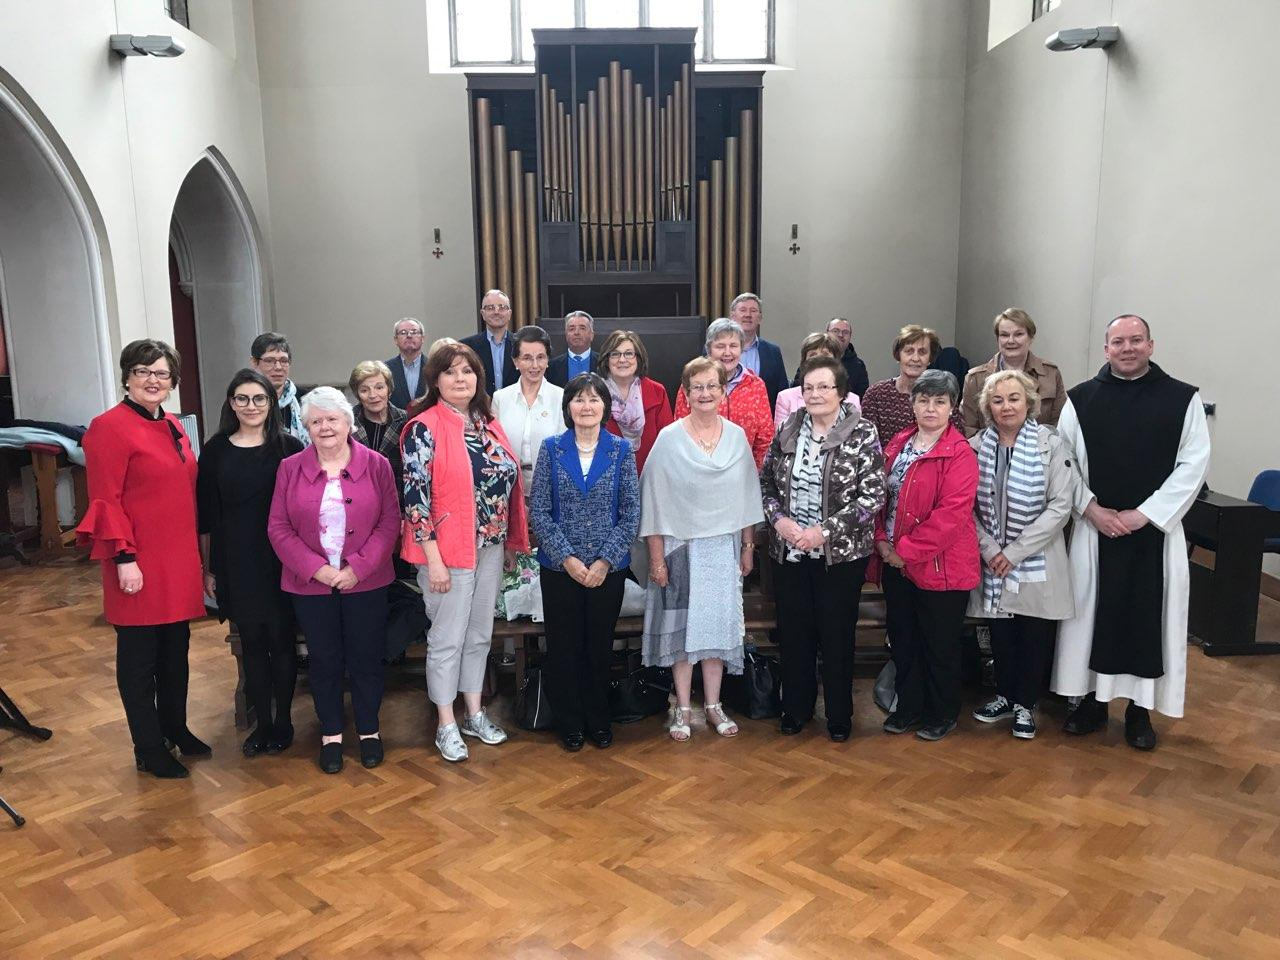 Community choir welcomes new voices